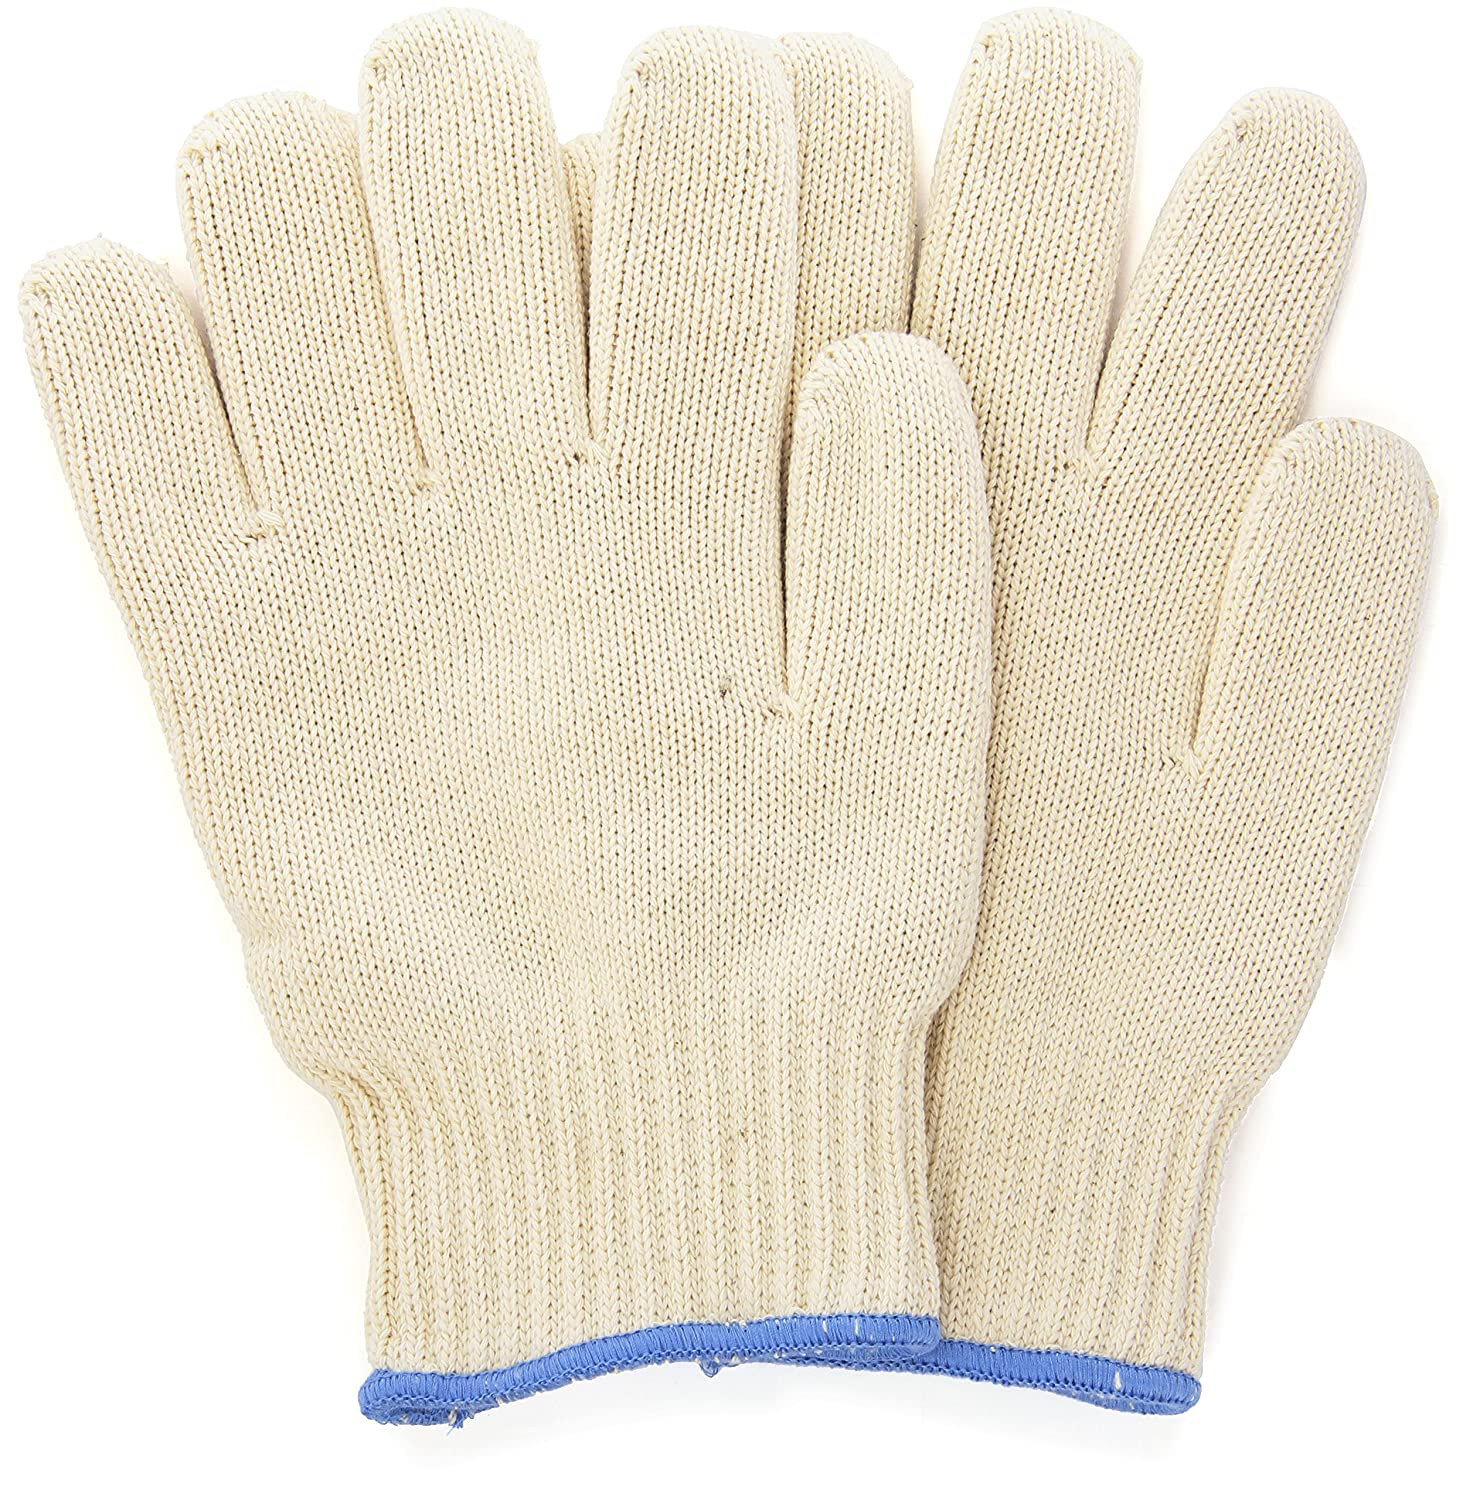 Handy Trends Model 00770 Oven Gloves One size Off White